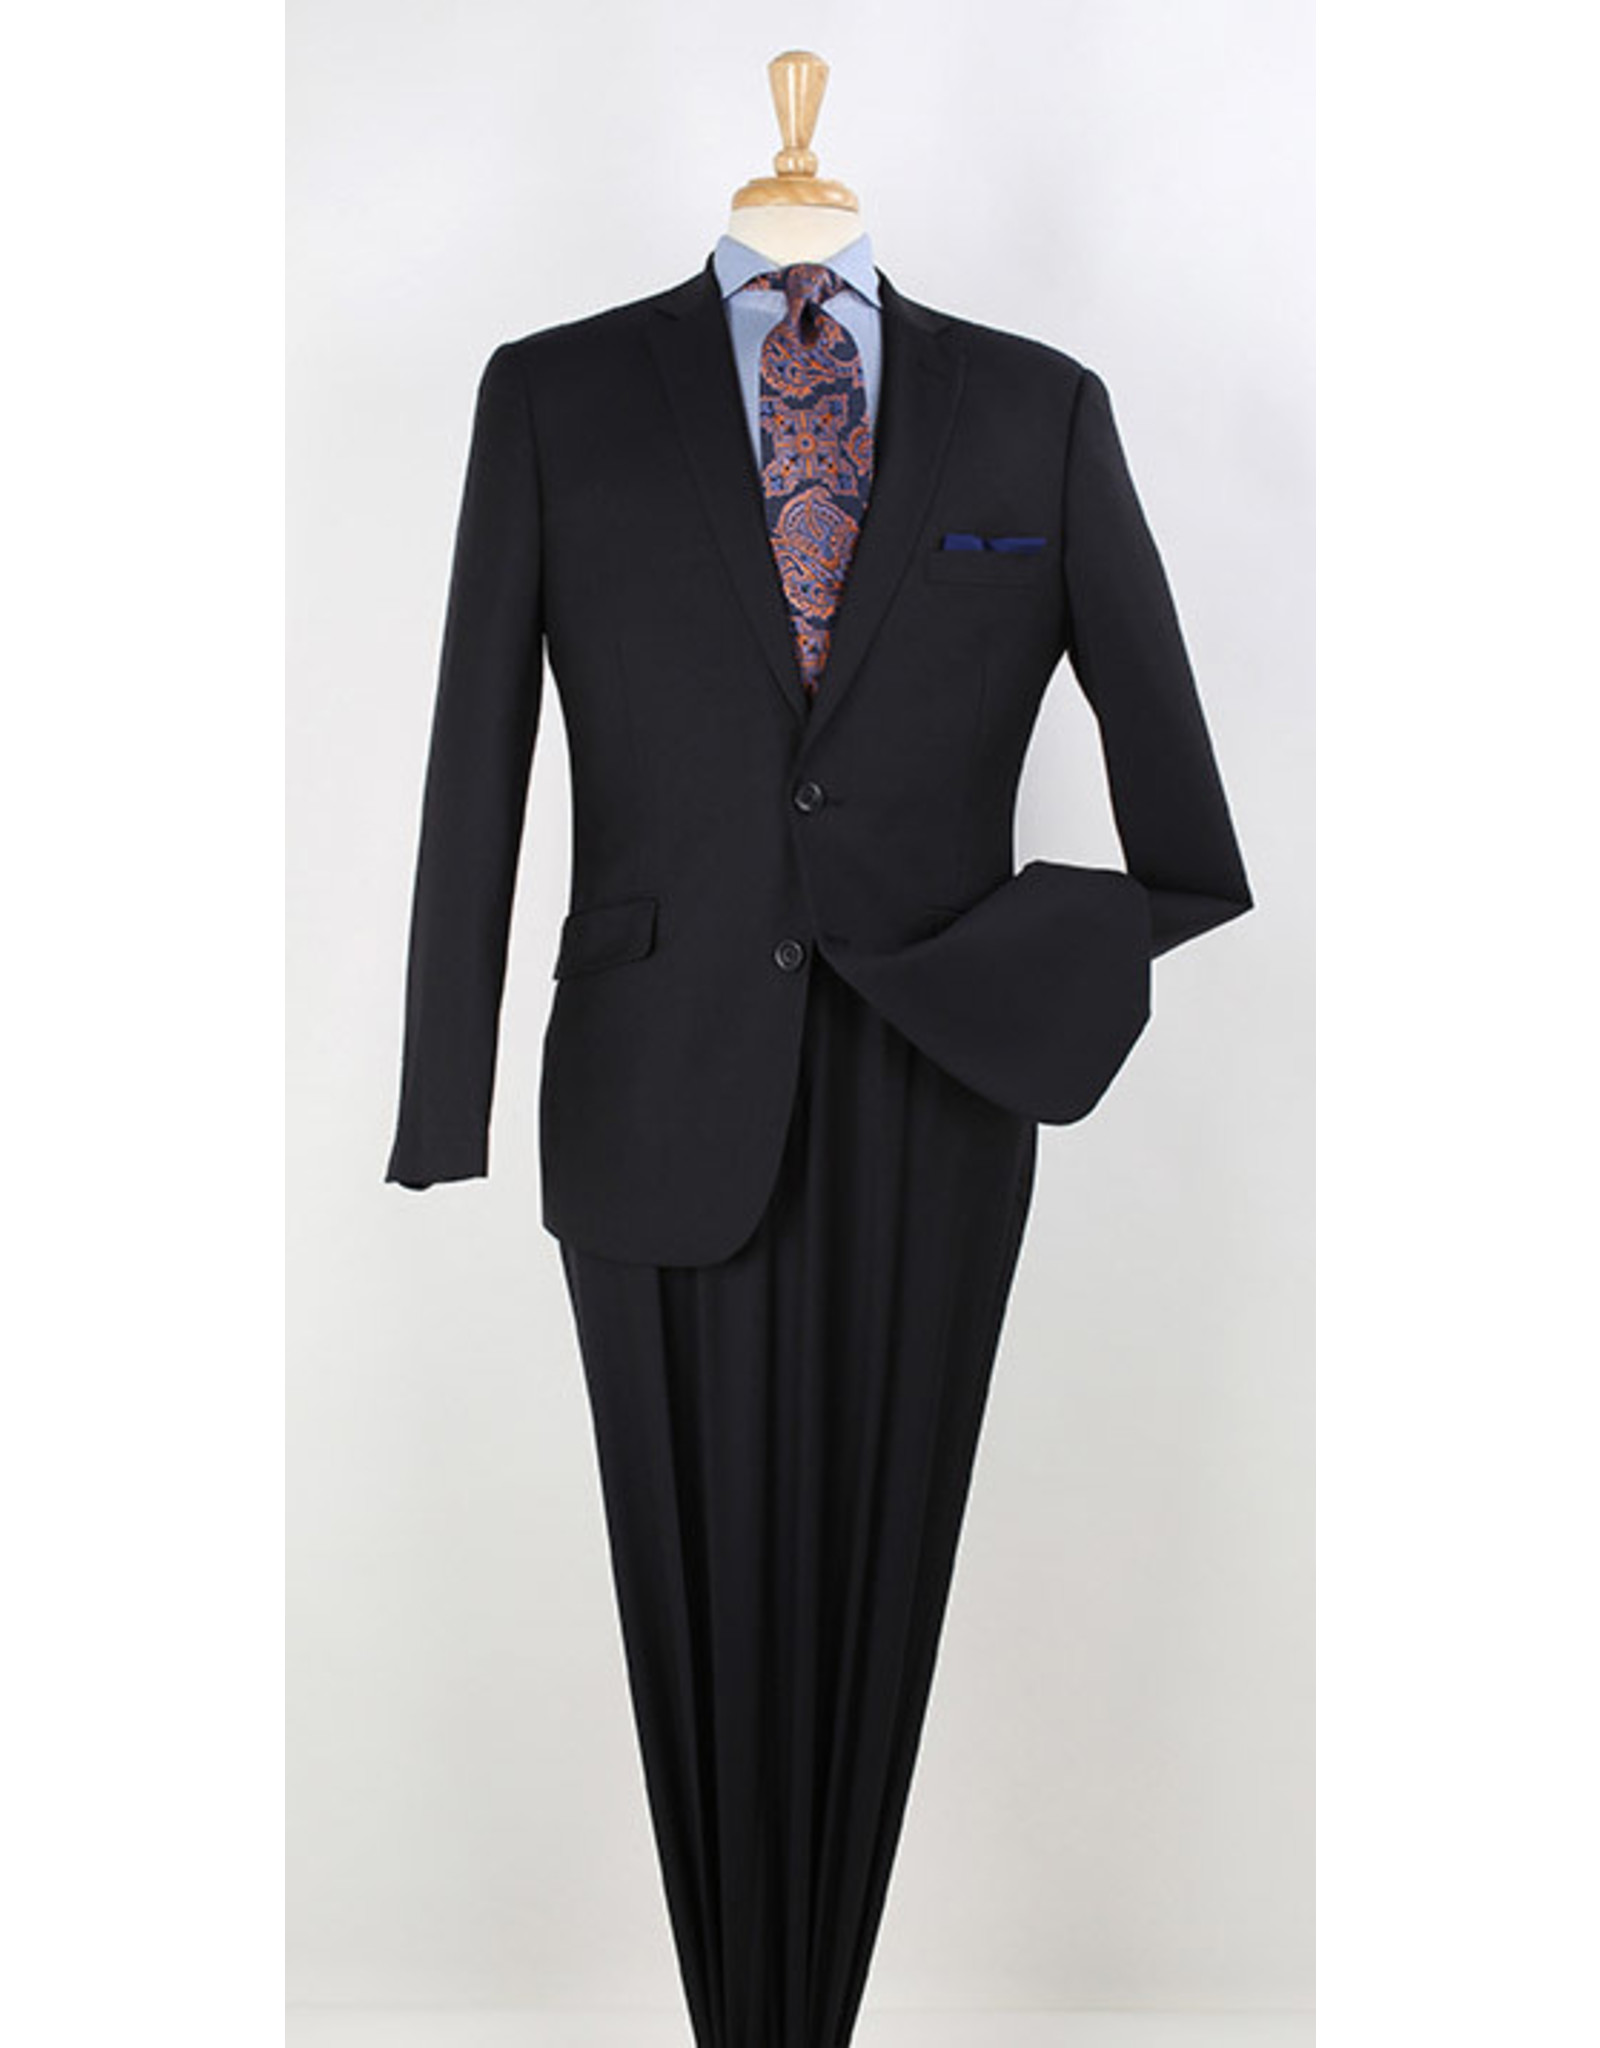 Apollo King Apollo Shadowstripe Suit - W11 Navy